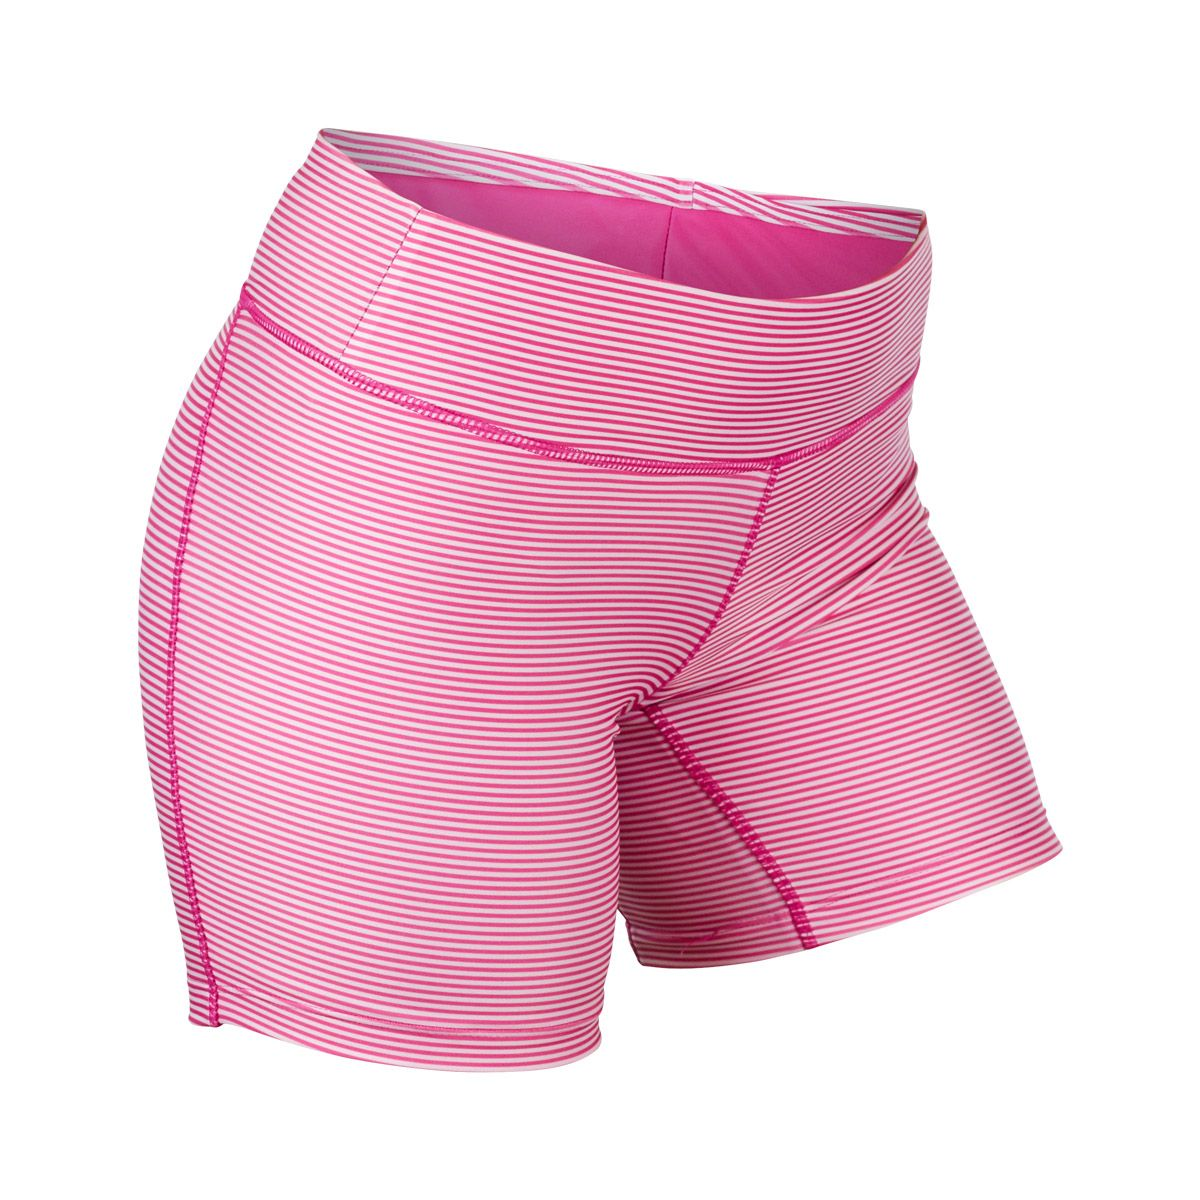 34be6f3bf8 ... protection shorts from UV Skinz. Swim Shorts Ladies | Swim Short Women  | Womens Active Shorts